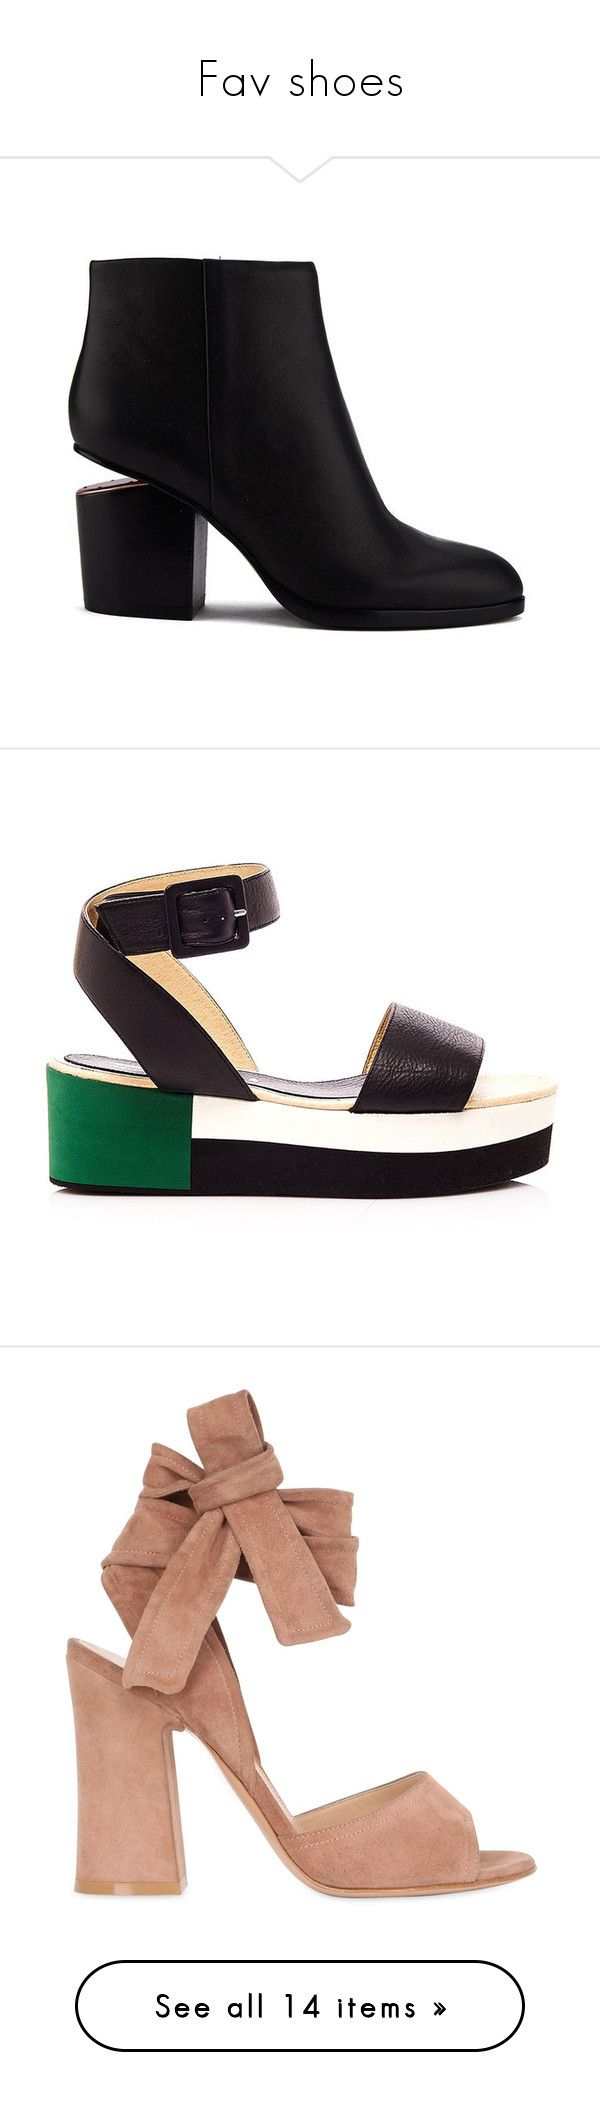 Fav shoes by yvmackelenberg on Polyvore featuring polyvore, women's fashion, shoes, boots, ankle booties, botas, black, heels, cutout booties, cut out booties, high heel ankle booties, high heel booties, high heel boots, sandals, flats, black sandals, black leather sandals, wide flats, wide width sandals, flat shoes, nude, leather sole shoes, suede lace up sandals, high heel shoes, nude shoes, wrap shoes, sneakers, silver, white platform shoes, silver shoes, white platform sneakers, lace up…